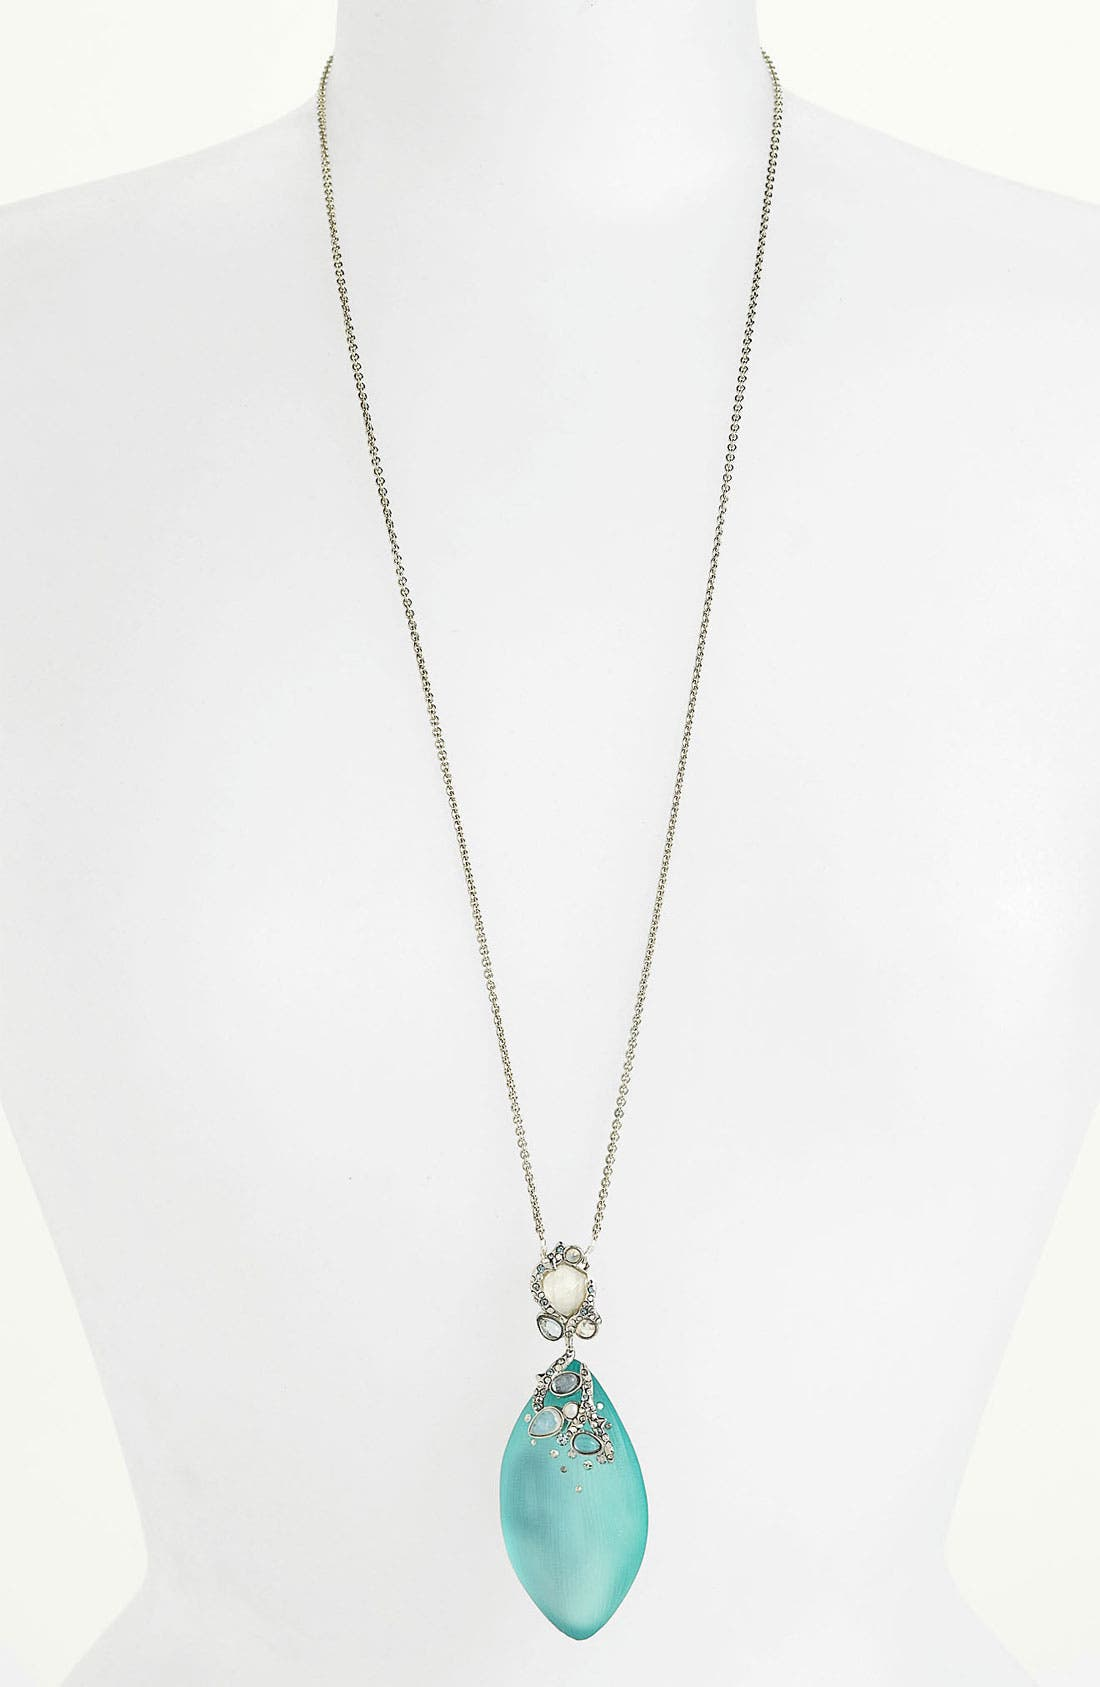 Alternate Image 1 Selected - Alexis Bittar 'Wanderlust' Pendant Necklace